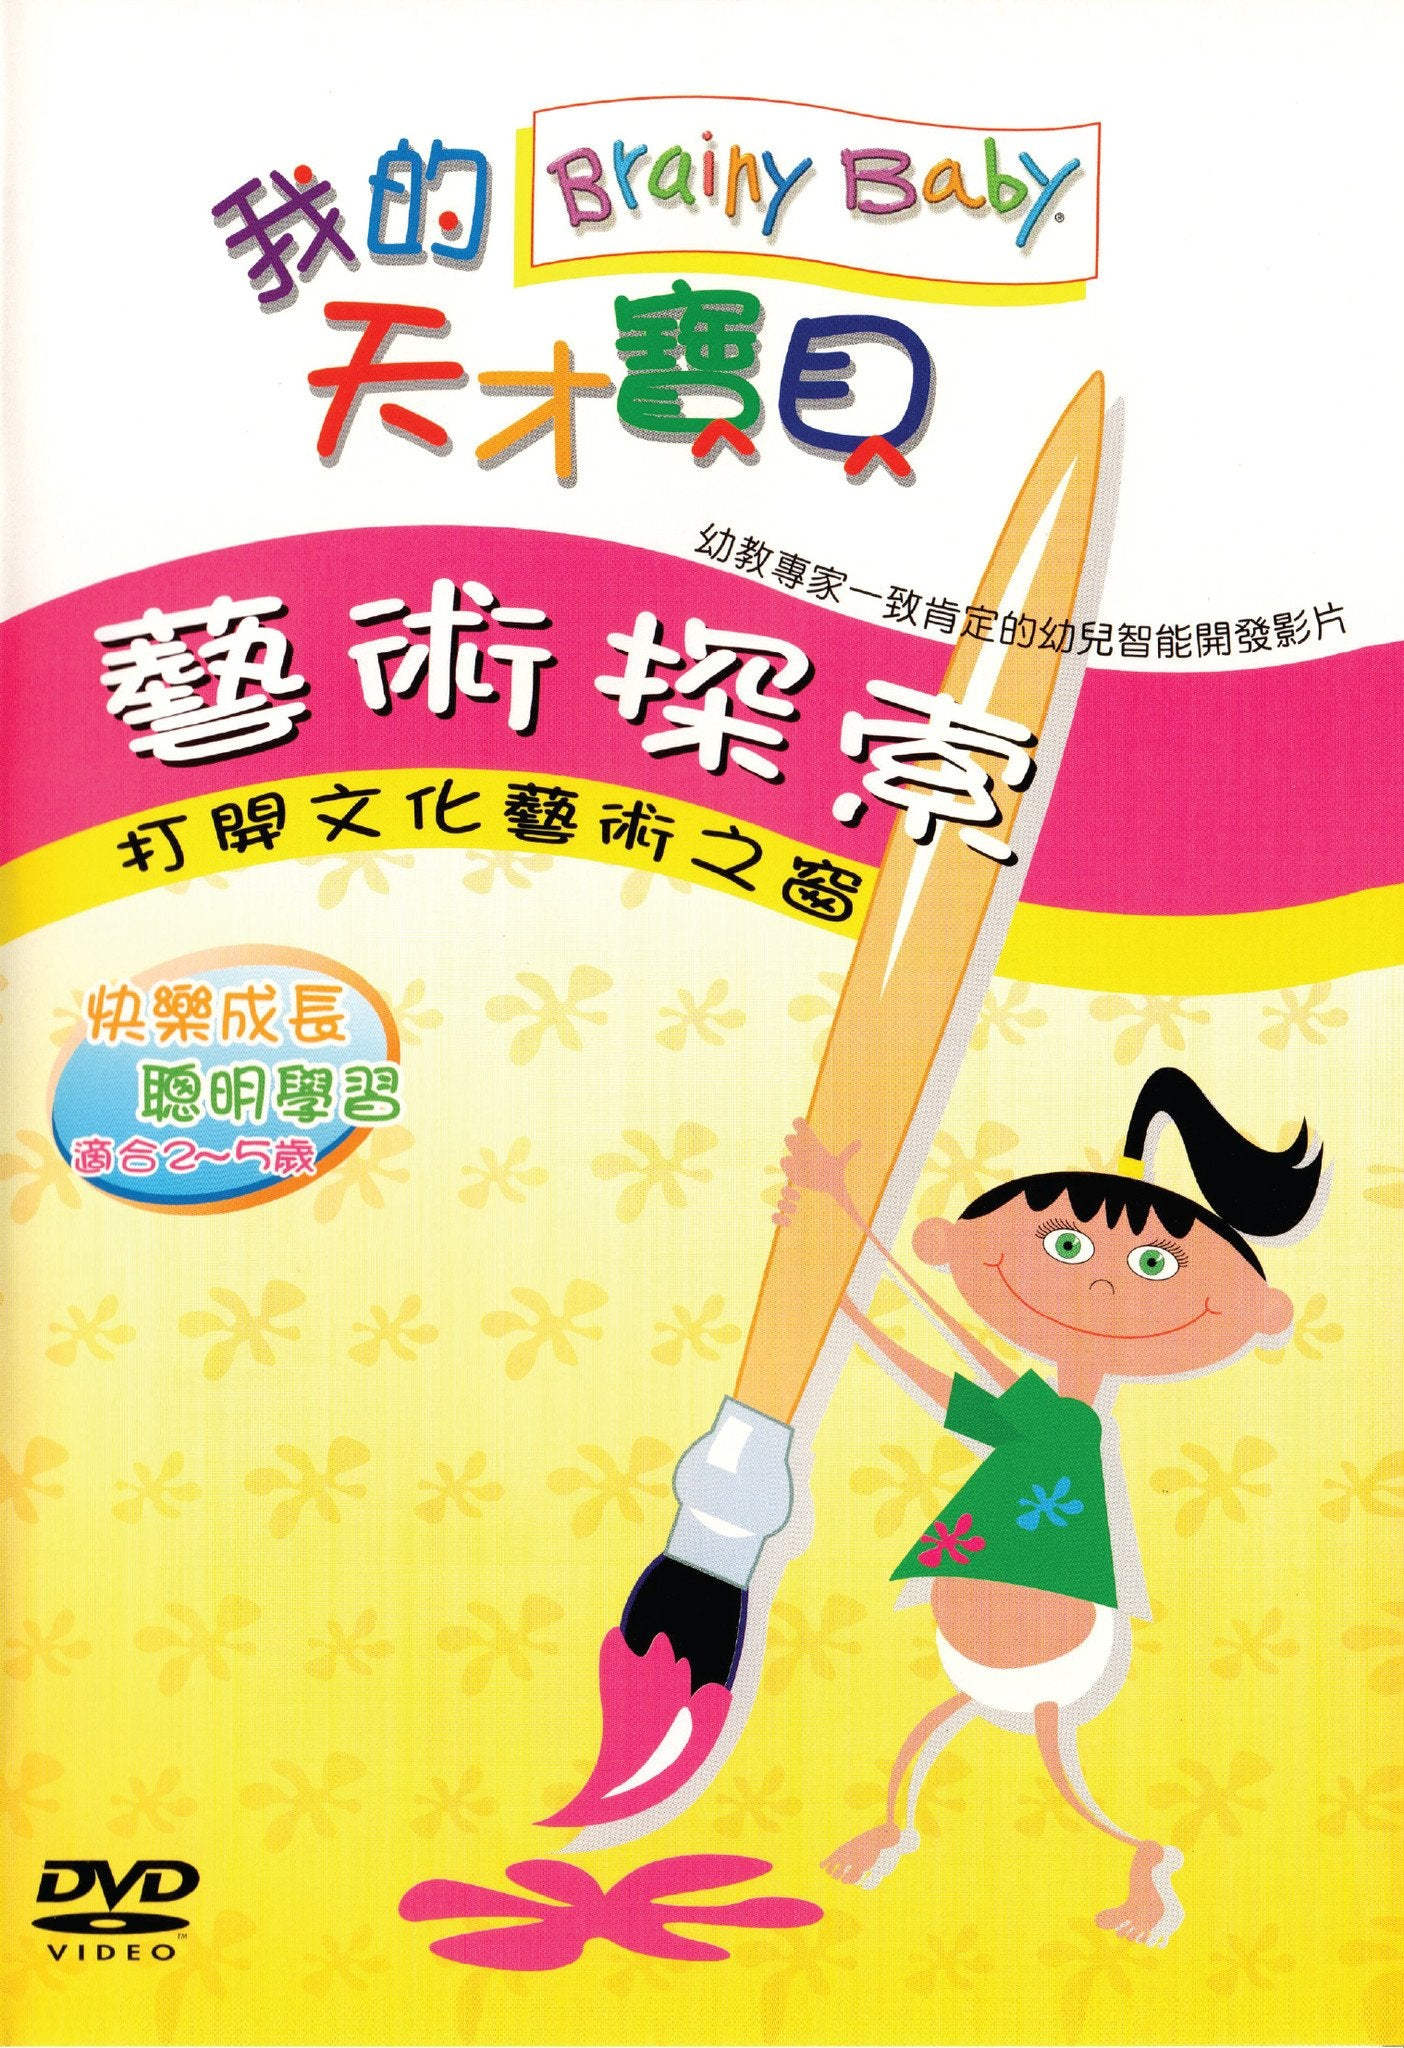 Brainy Baby Chinese Language Art DVD